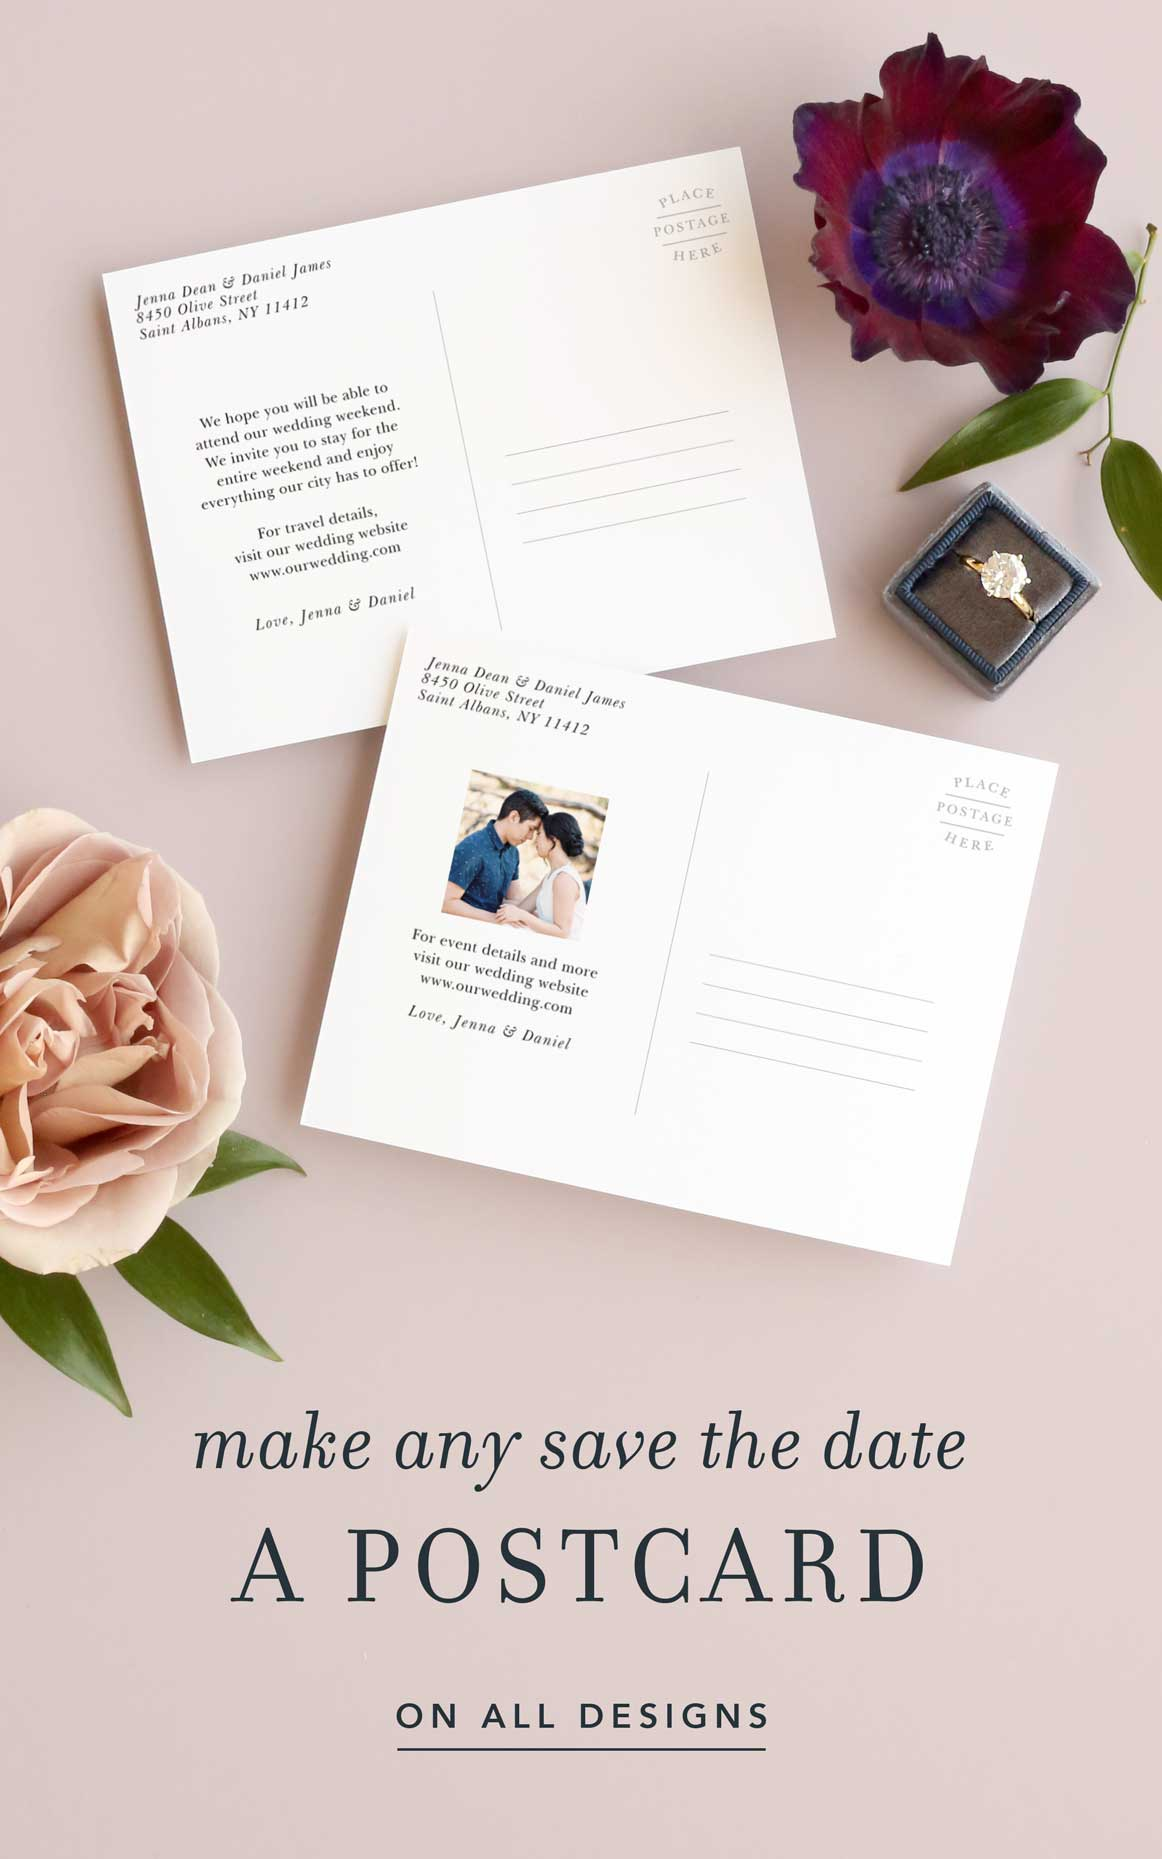 Make any save the date a postcard!